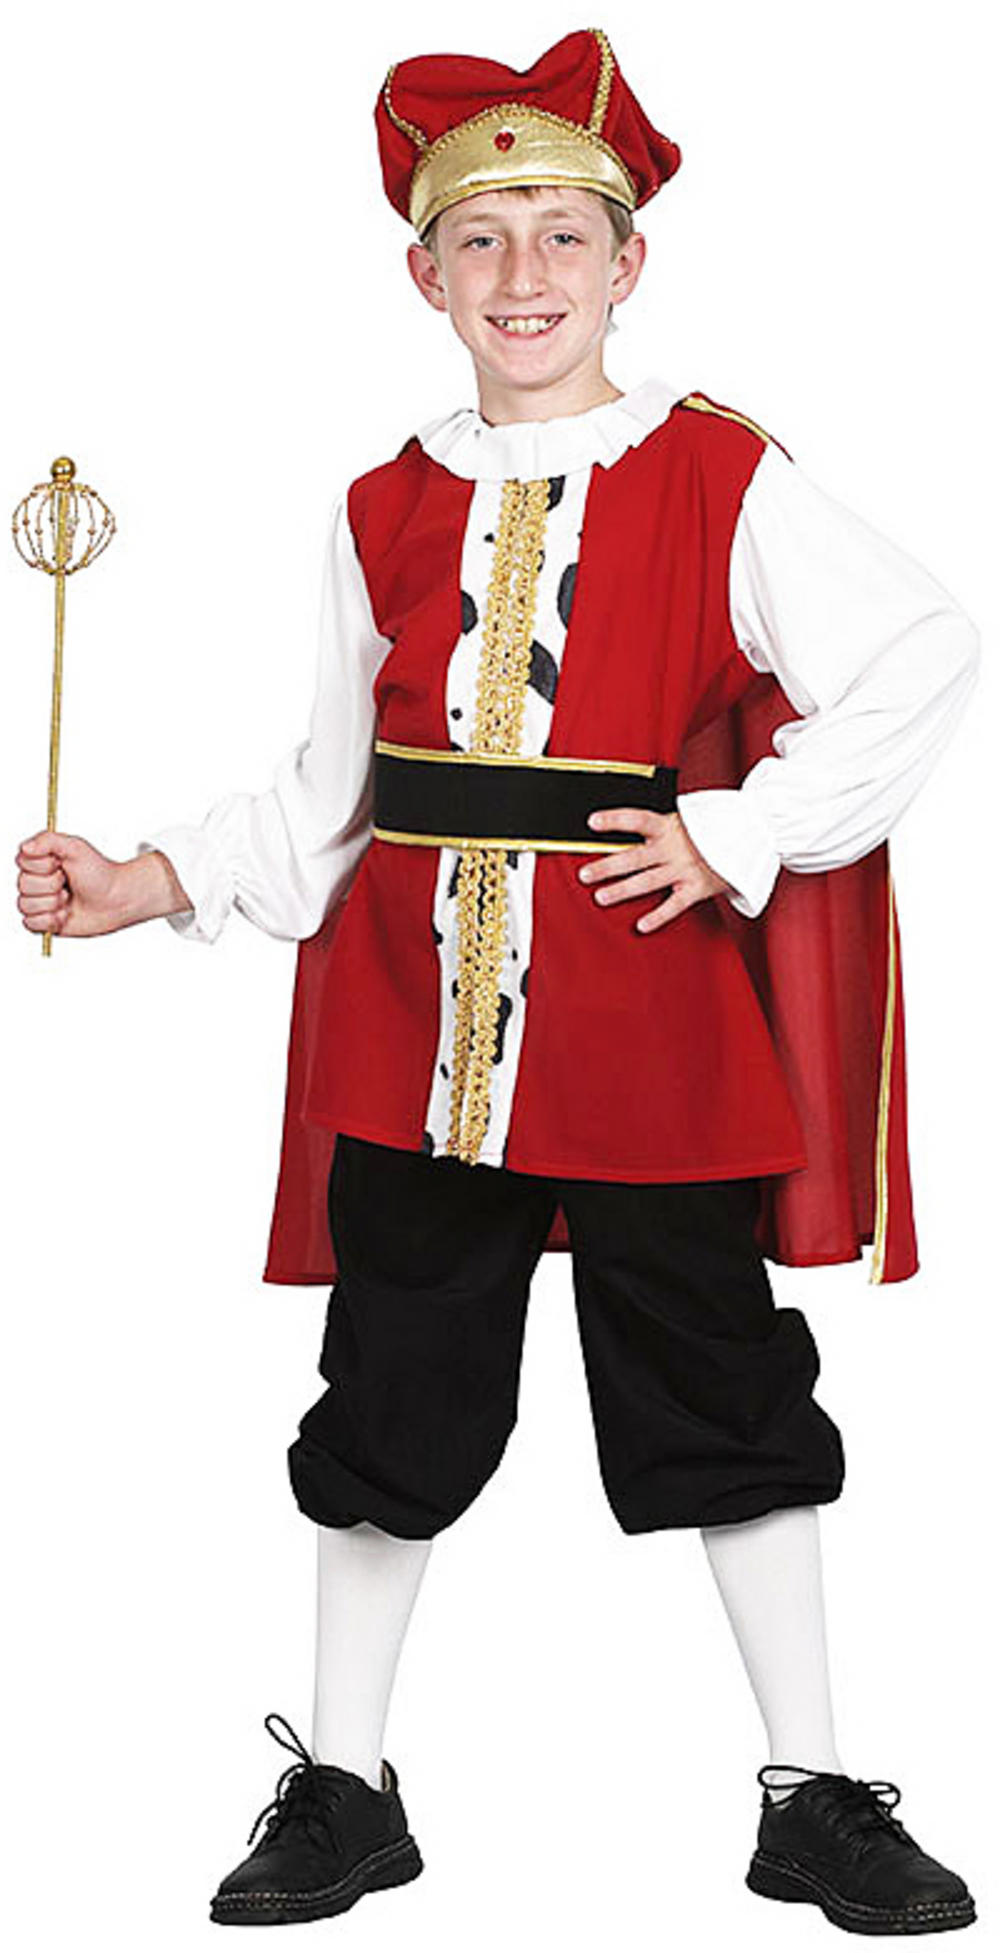 Boys Medieval King Costume  sc 1 st  Mega Fancy Dress & Boys Medieval King Costume | Kids Christmas Costumes | Mega Fancy Dress